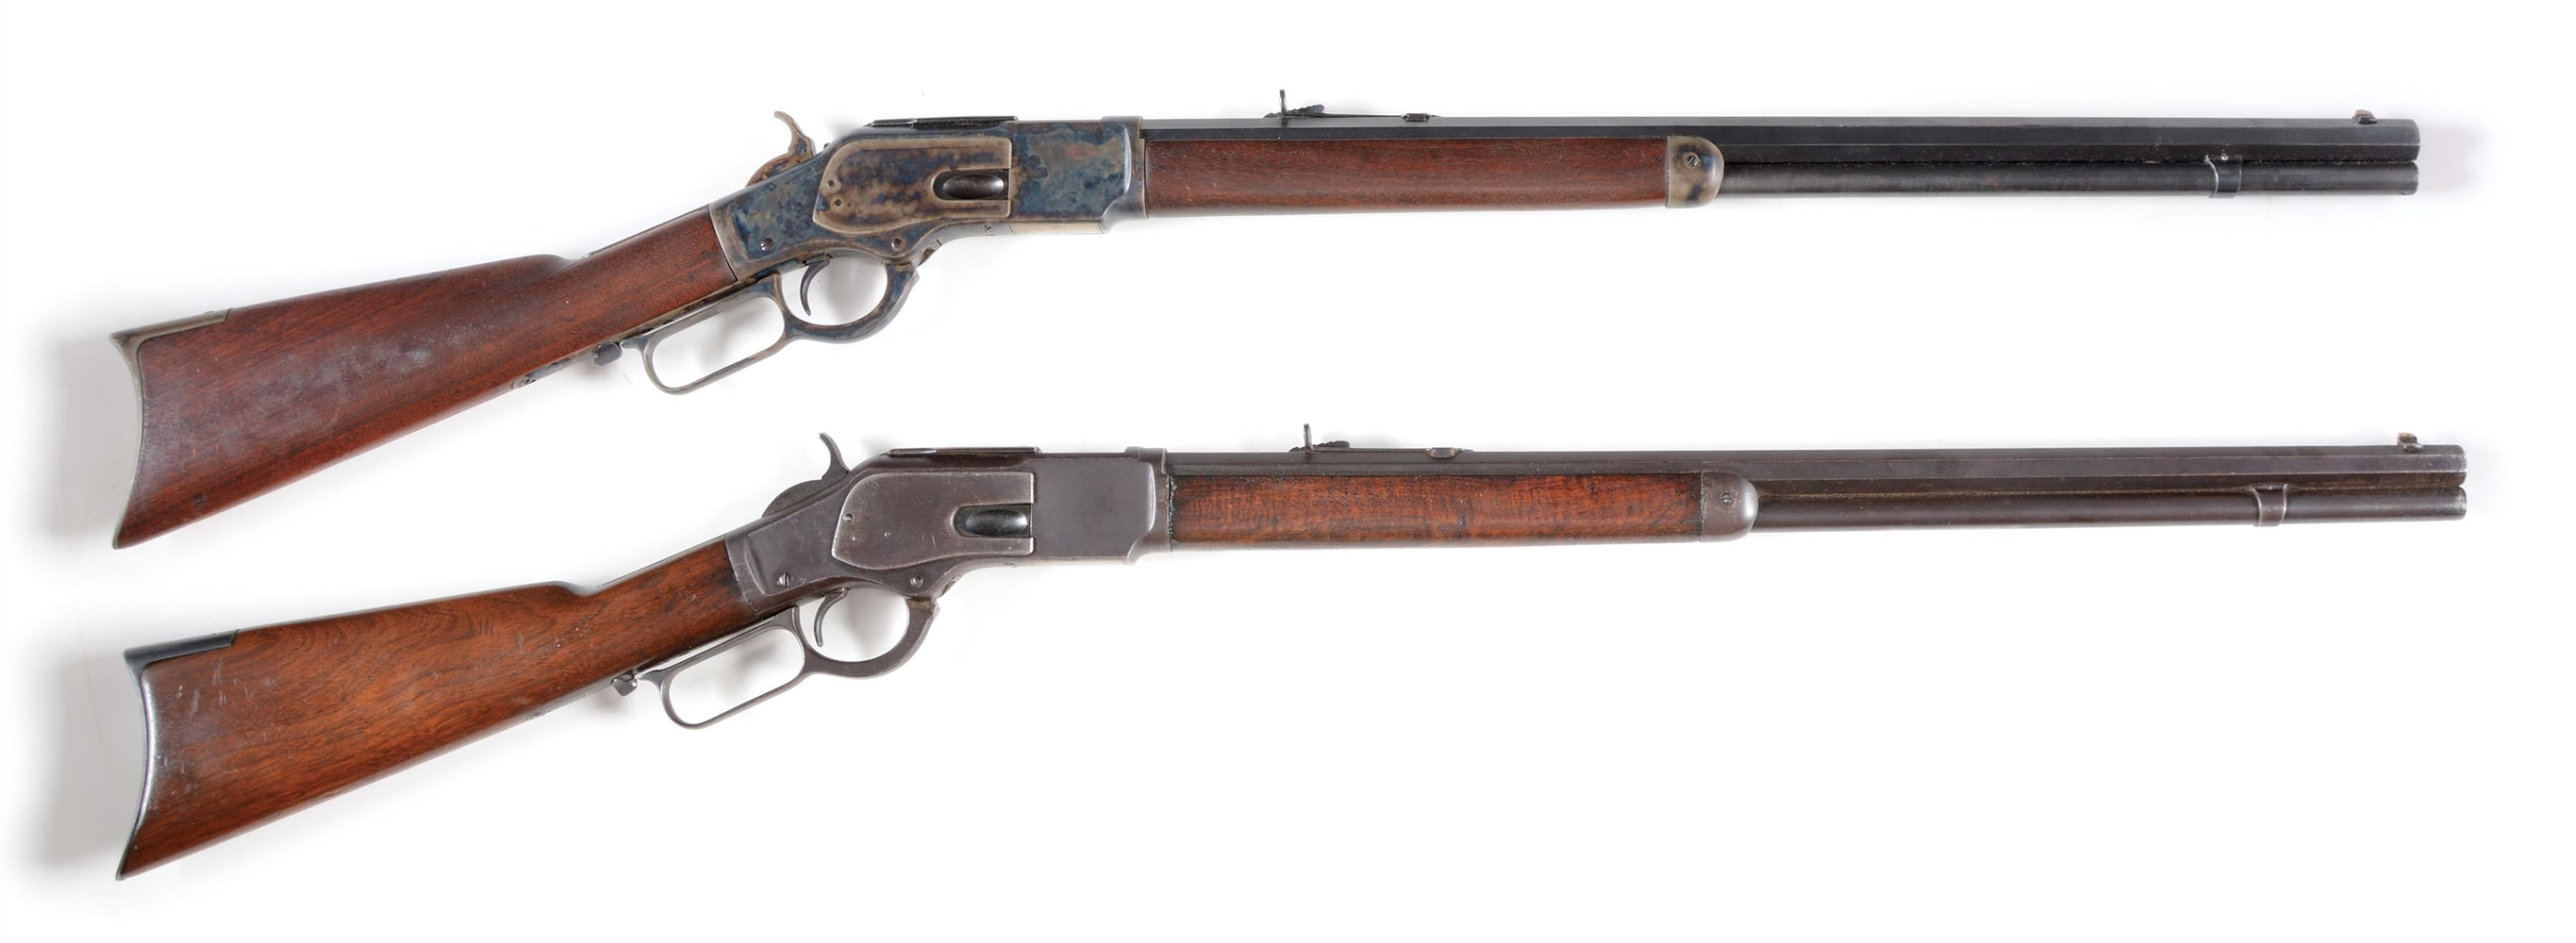 (A) LOT OF 2: WINCHESTER 1873 LEVER ACTION RIFLES.